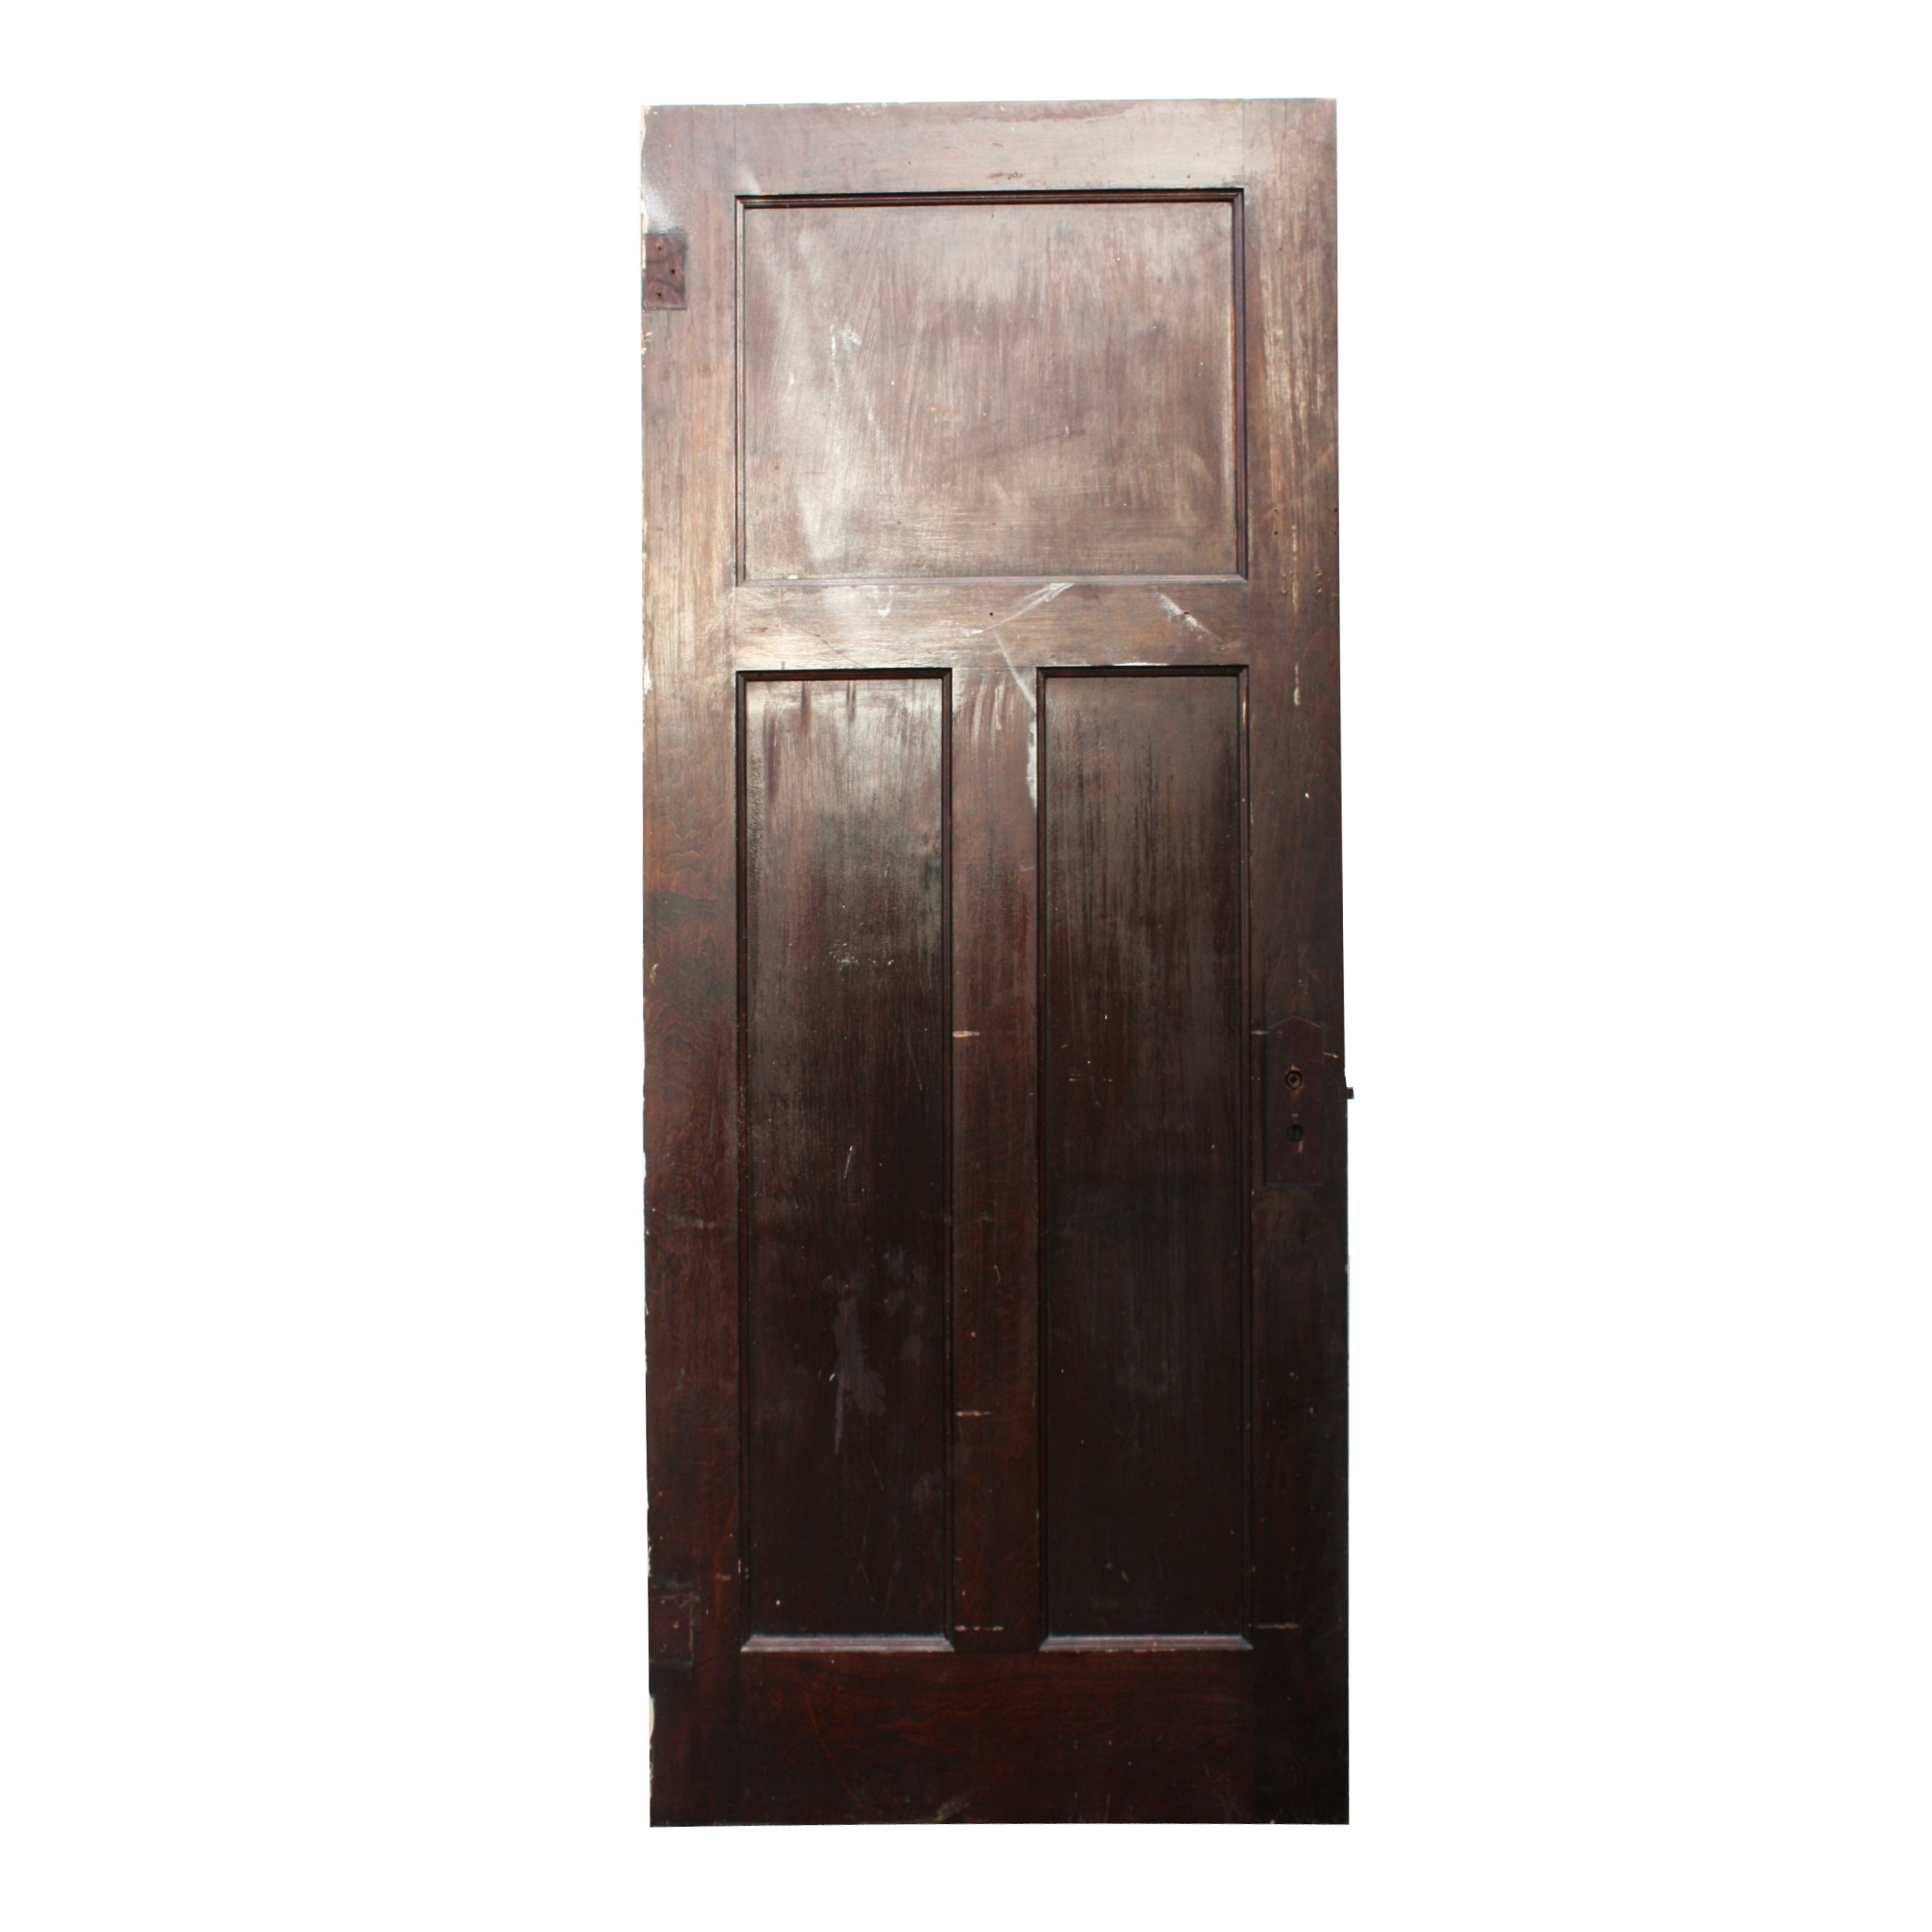 Solid Wood Exterior Doors For Sale Of Antique Three Panel Solid Wood Door Stained Finish Nid27